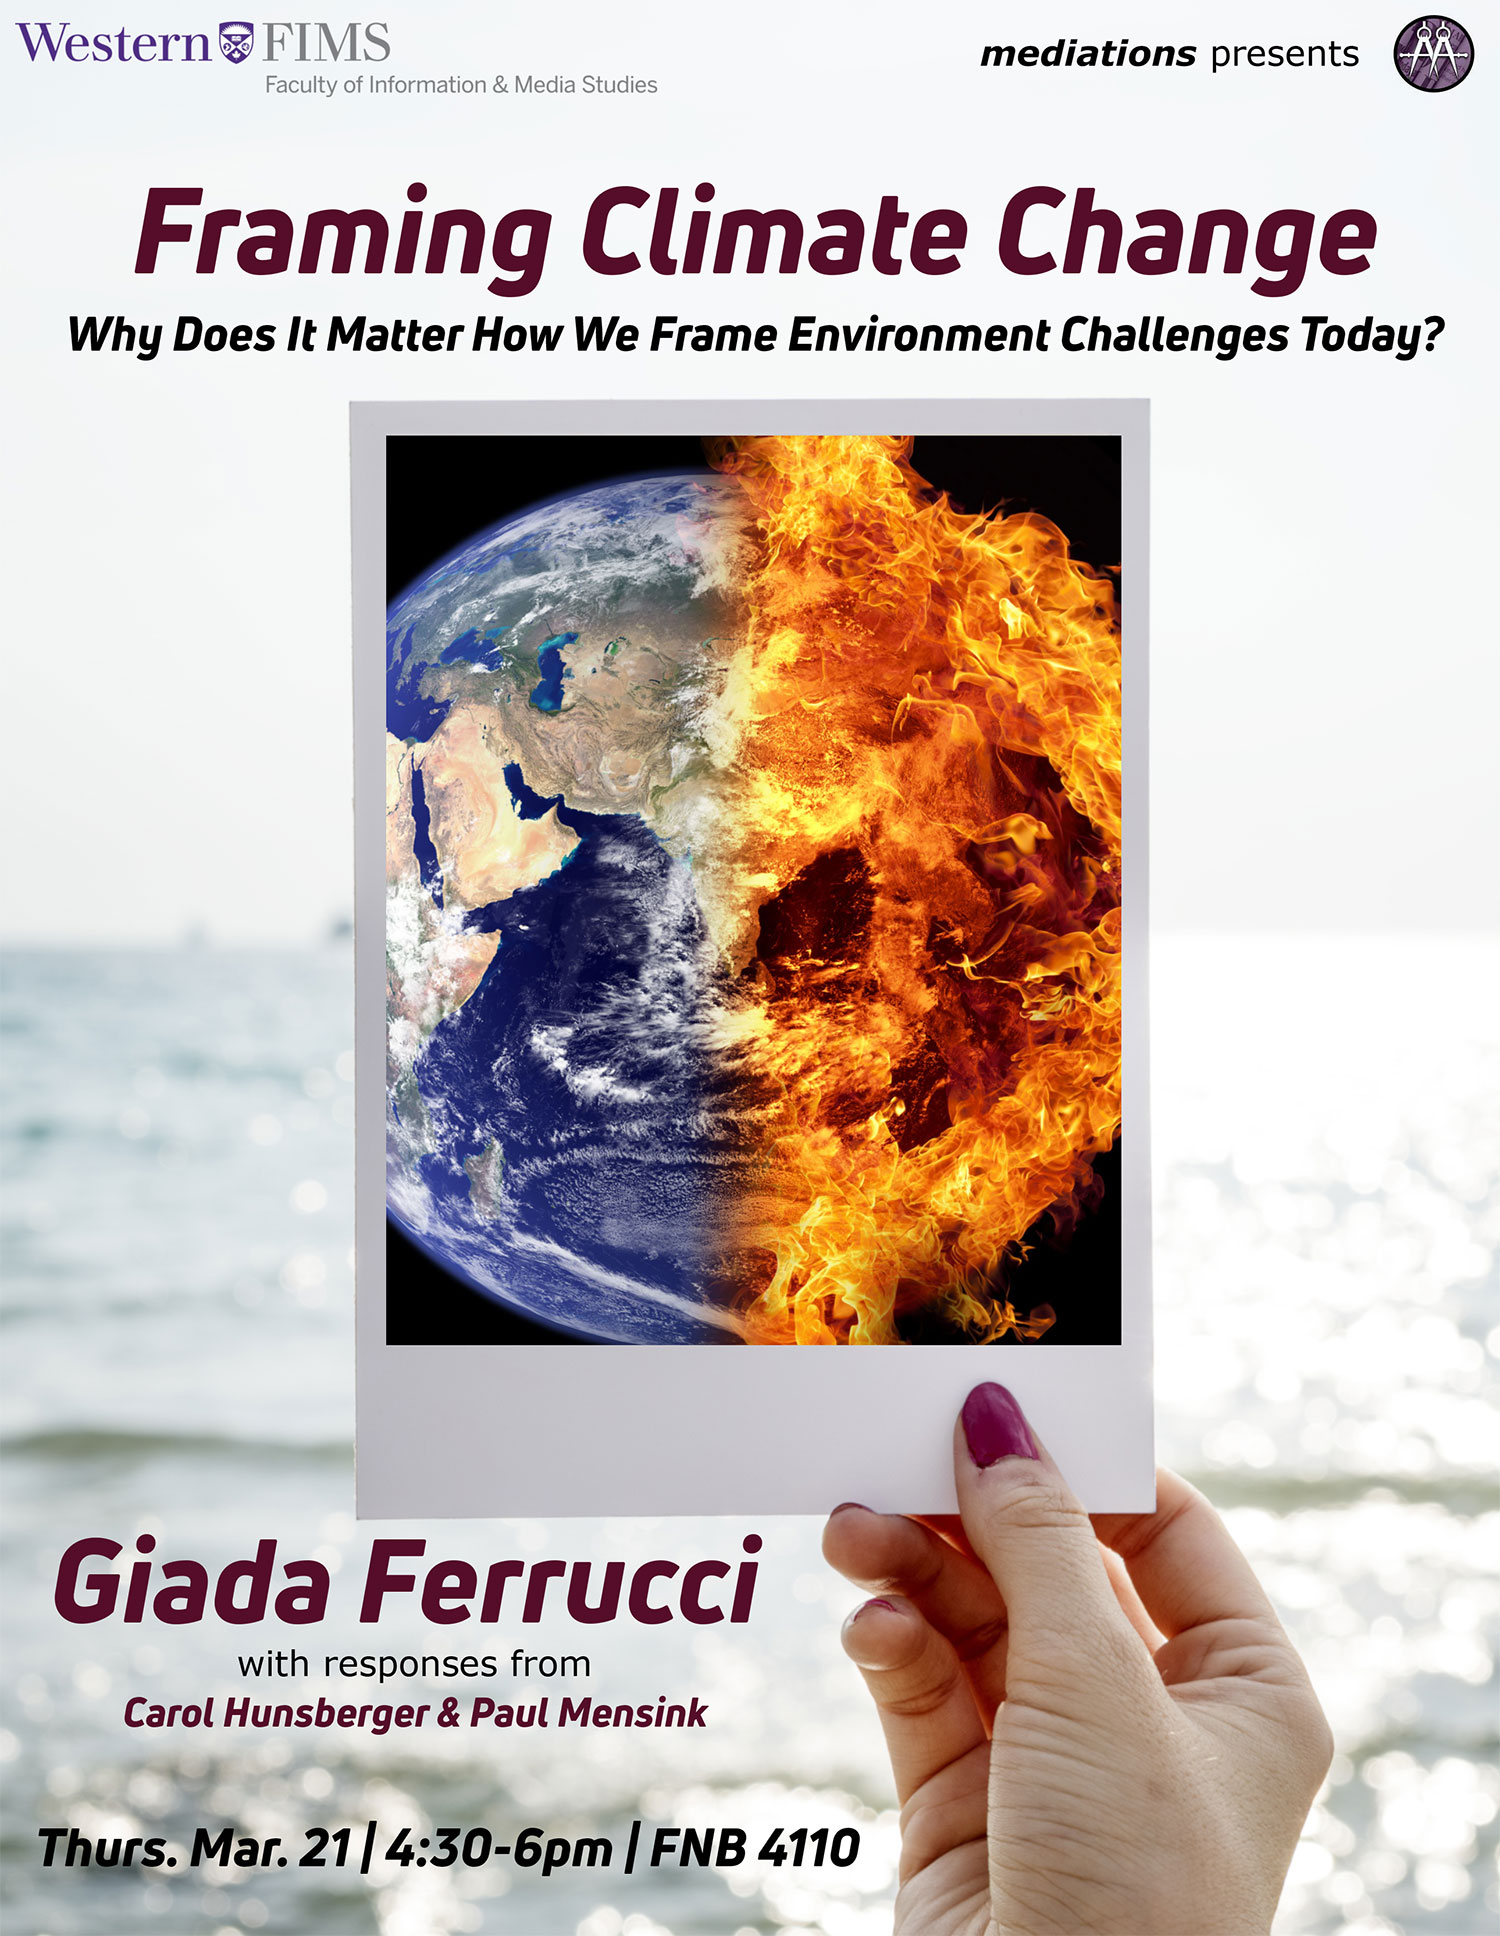 Poster for Framing Climate Change